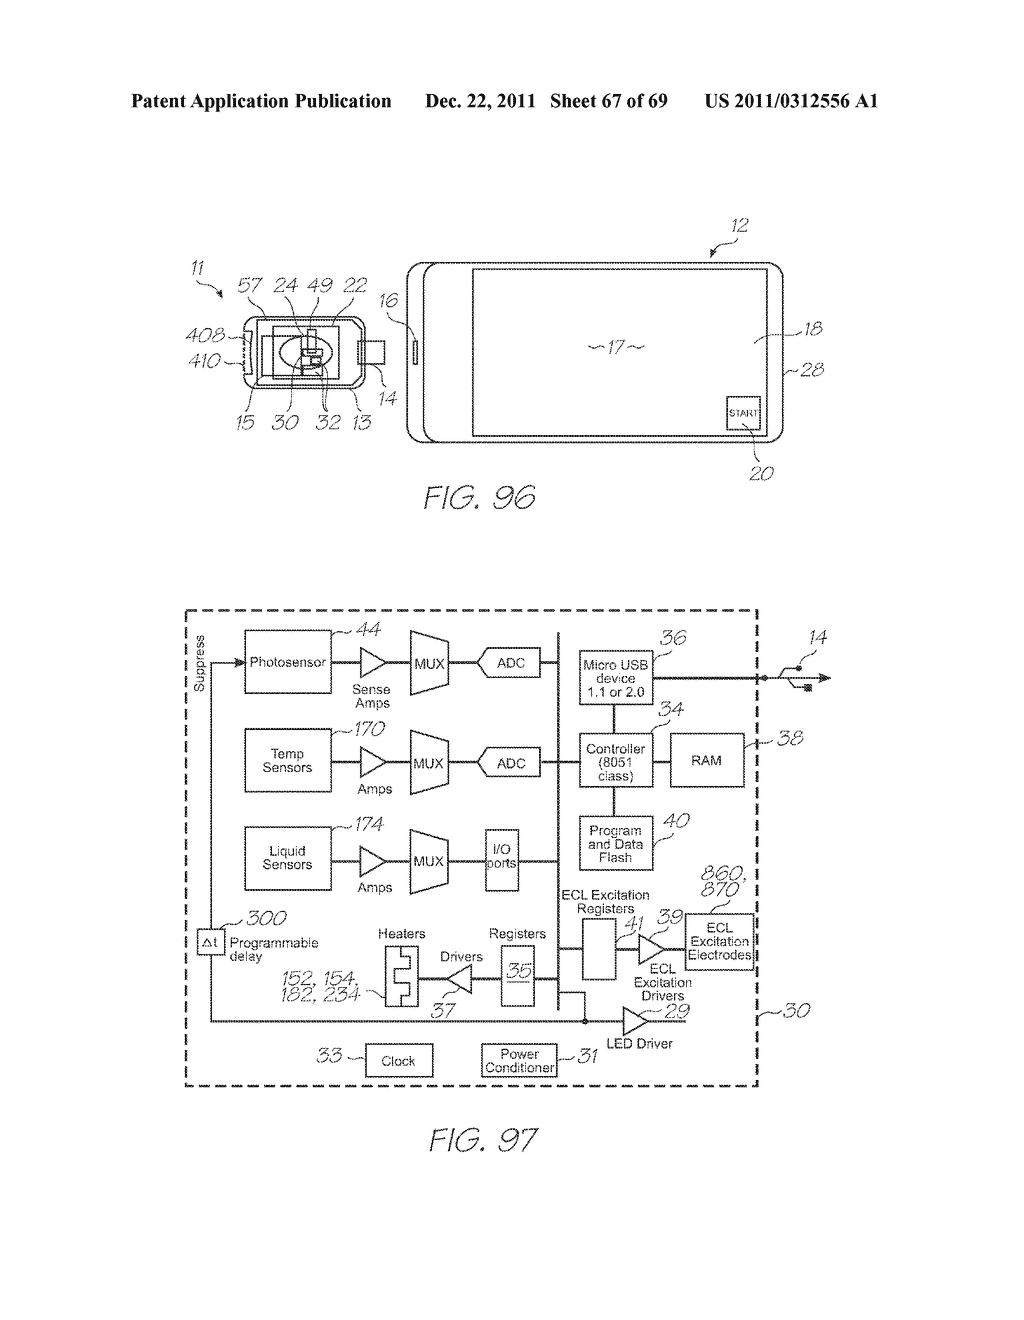 MICROFLUIDIC DEVICE WITH TRIGGER PHOTODIODE IN EACH HYBRIDIZATION CHAMBER - diagram, schematic, and image 68